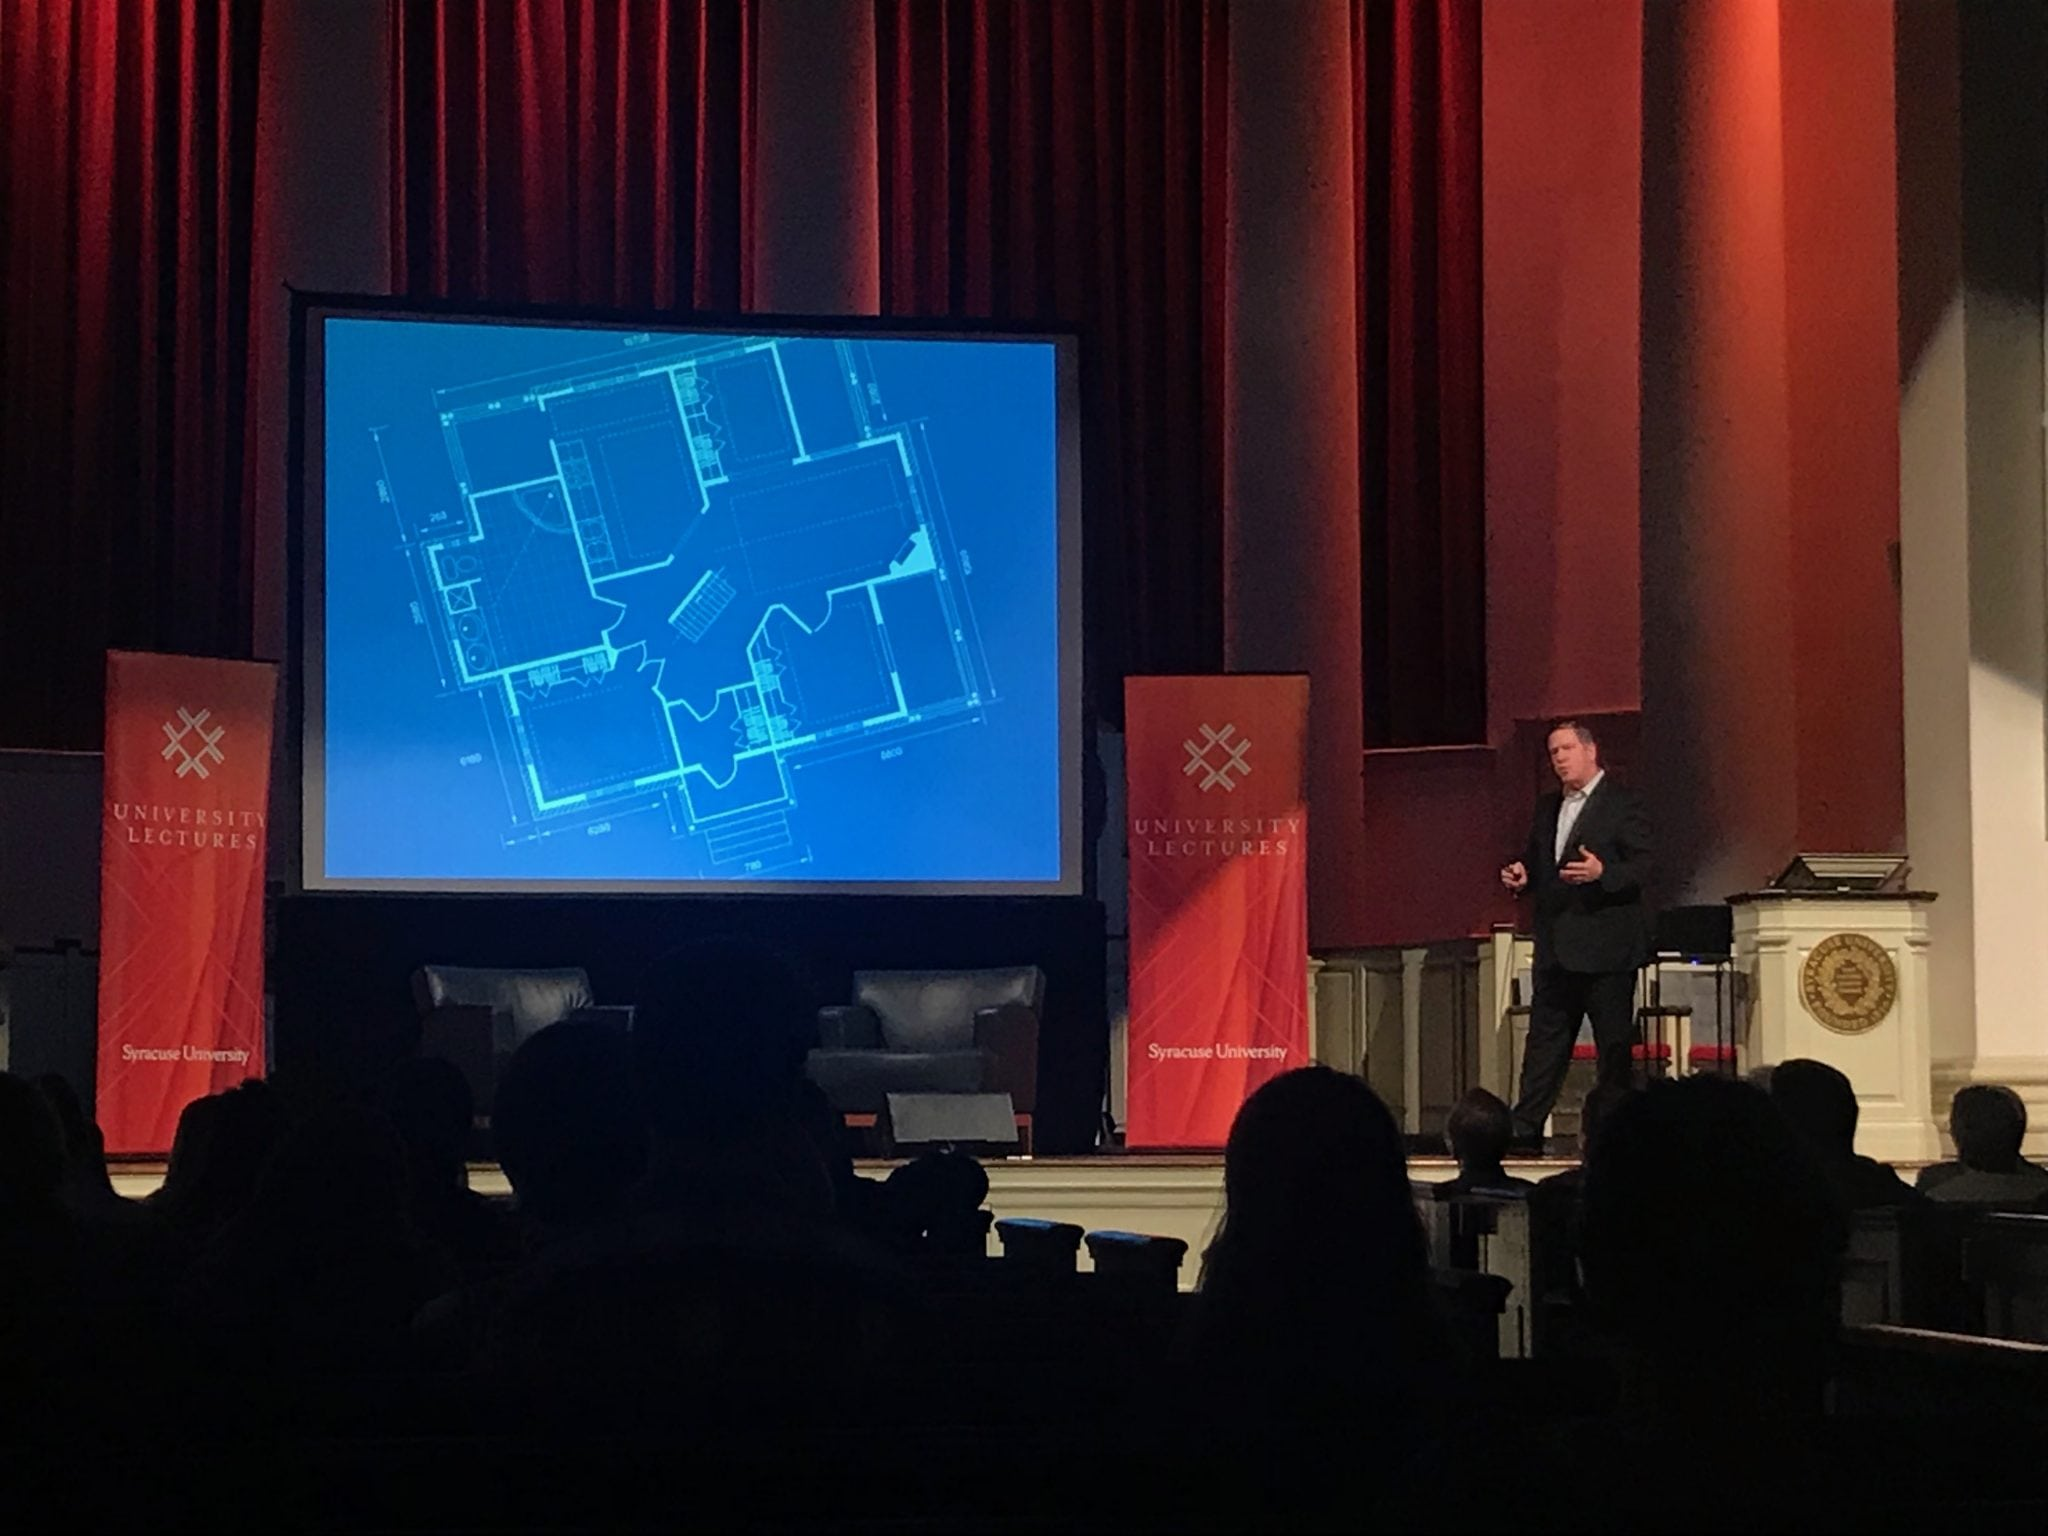 Rick Fedrizzi at Syracuse University's University Lectures event on April 24, 2018